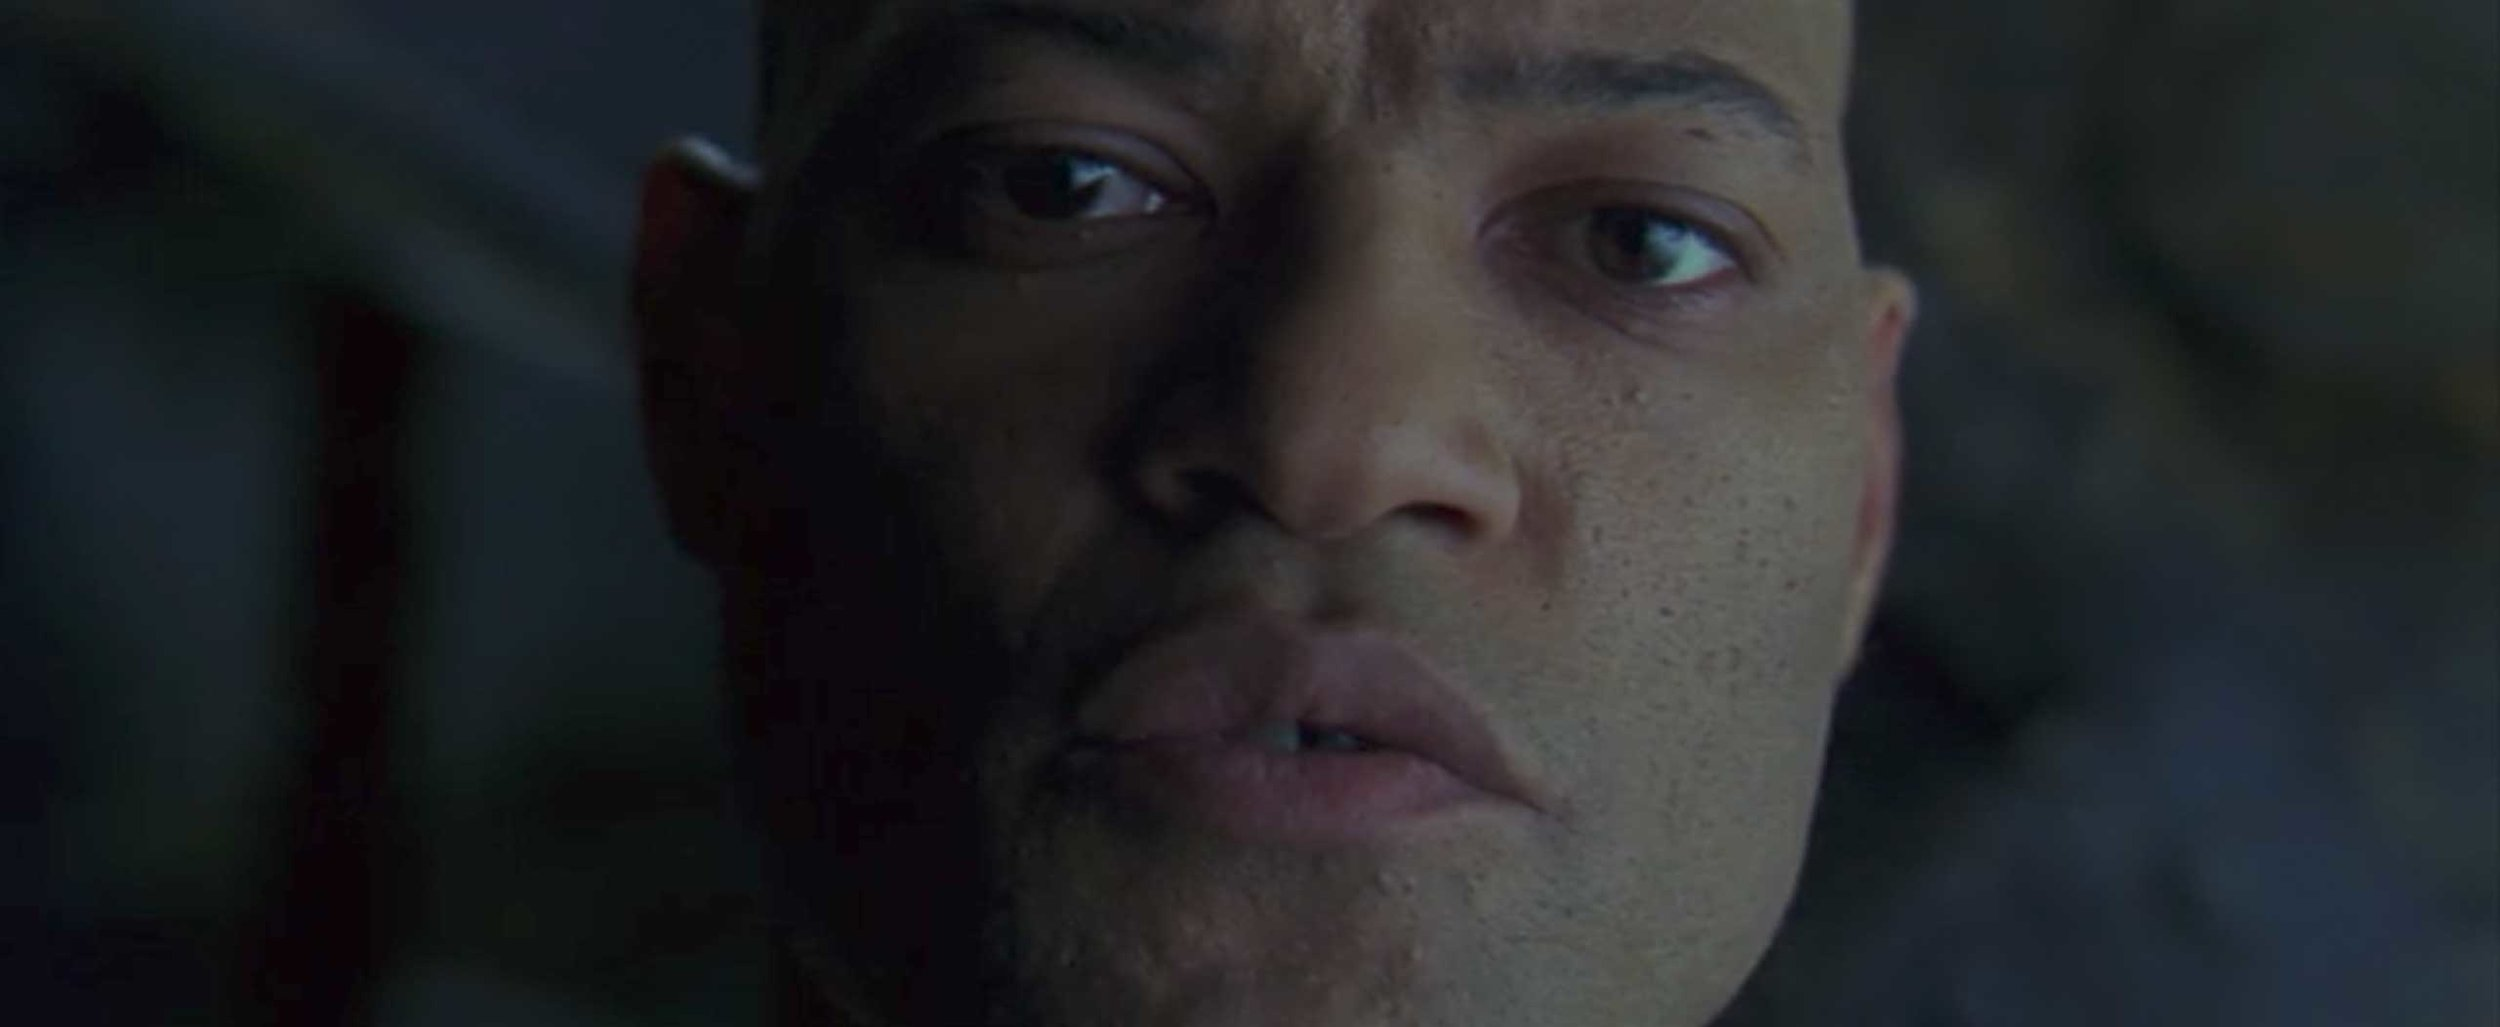 Virtually every line by Morpheus would've been perfect for the trailer because he spends a lot of time describing things.